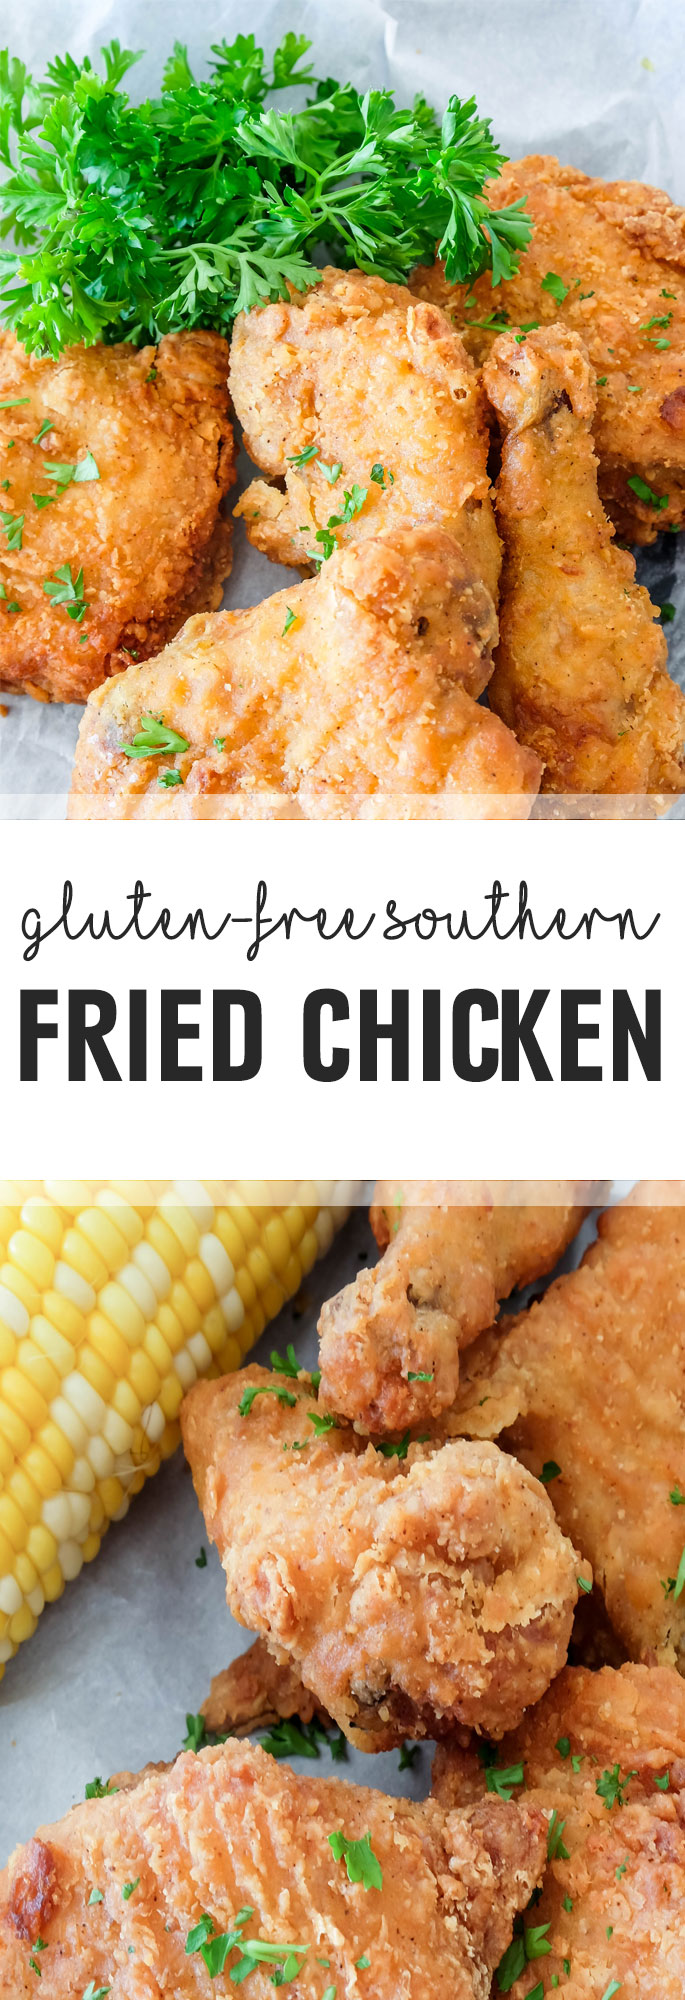 When it comes to fried chicken, the coating should be perfectly seasoned and with just the right amount of crispiness such as is this fried chicken recipe. Shared via http://www.gluteninsight.com